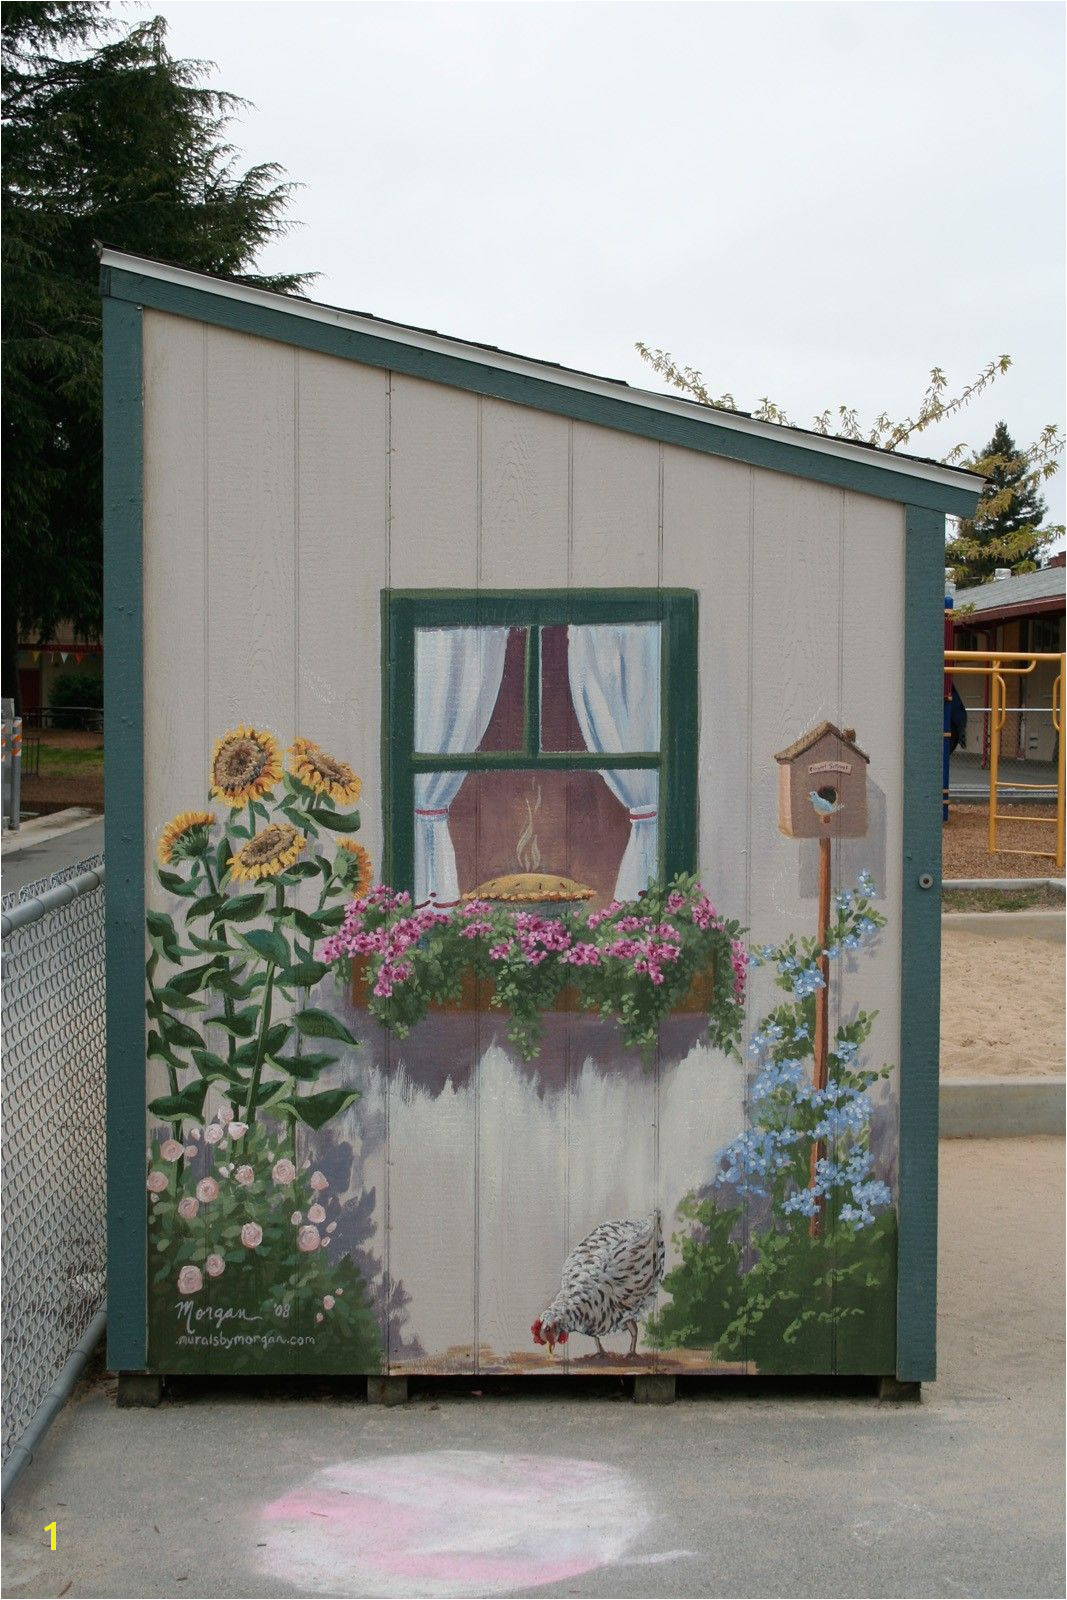 I painted this mural in the kindergarten yard of Santa Rita Elementary School in Los Altos CA I painted the shed to be sweet and whimsical to set a happy